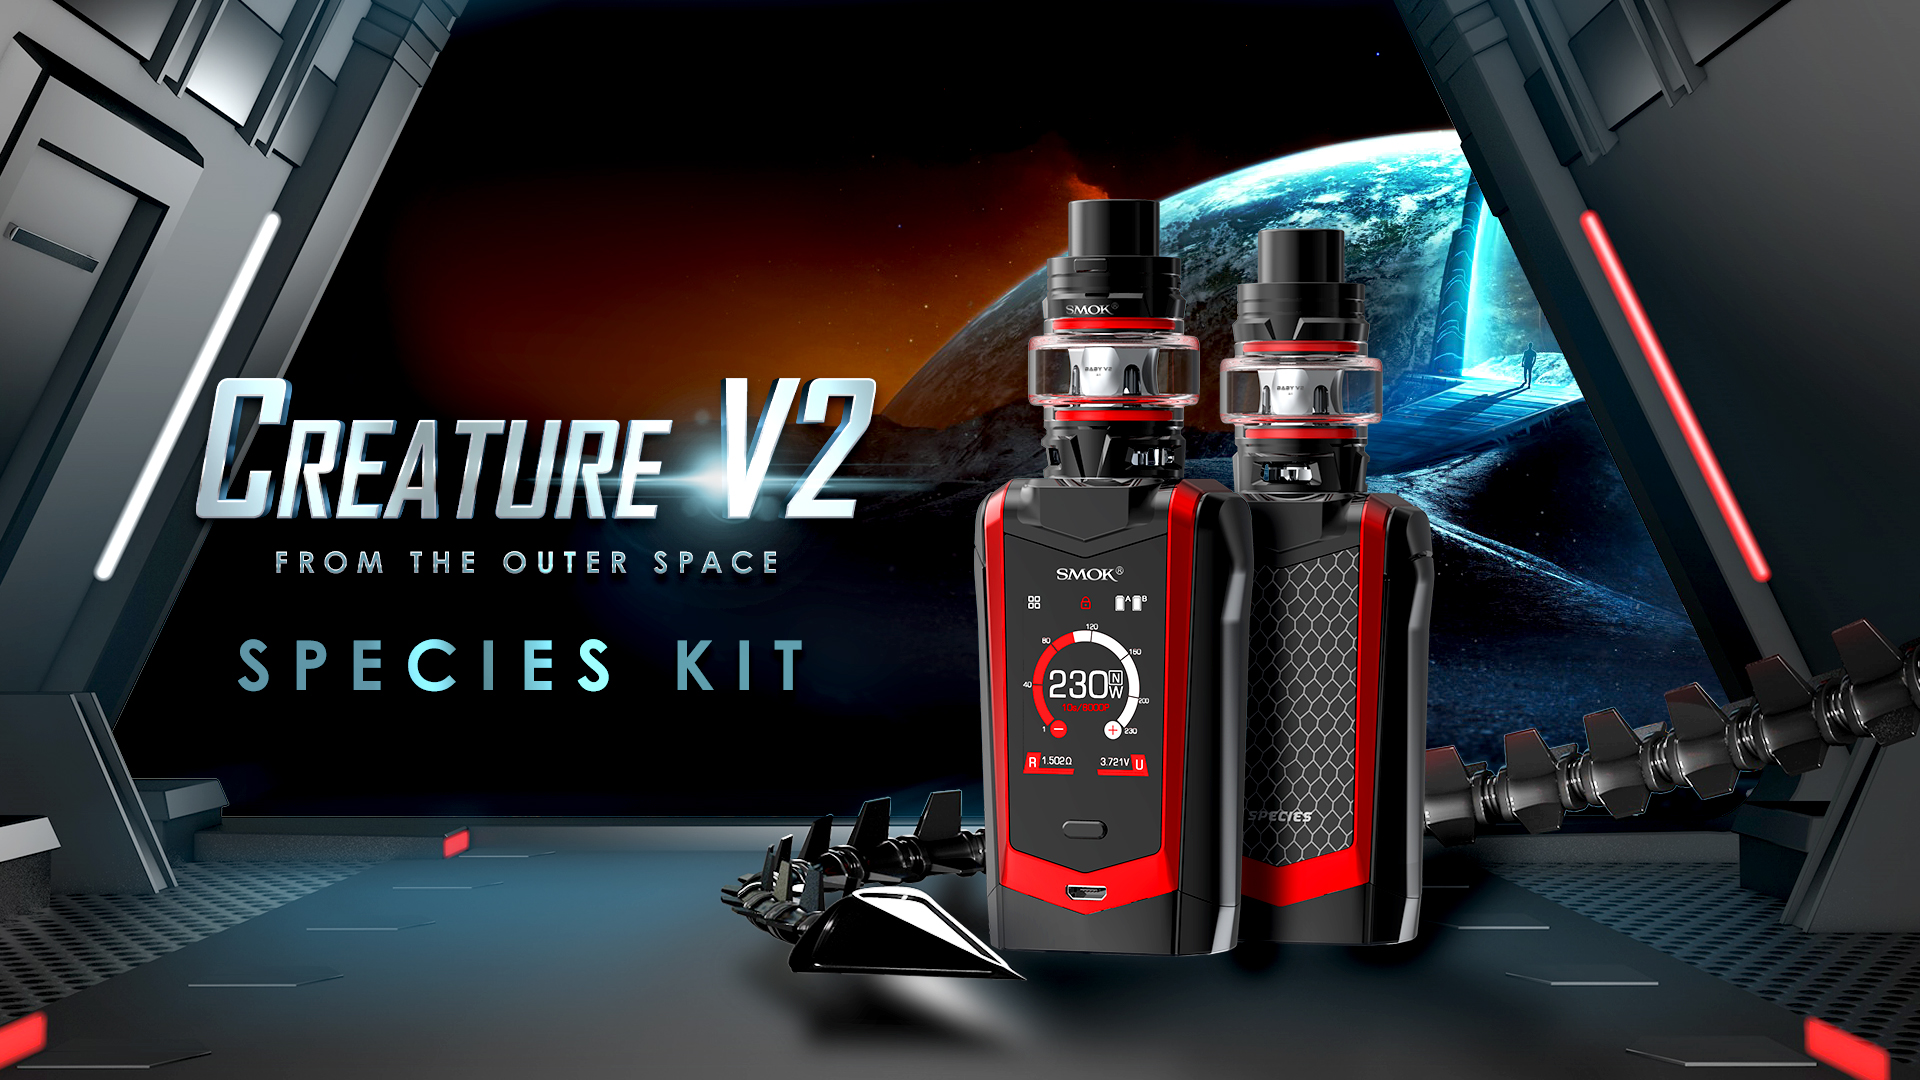 Smok Species V2 230W kit